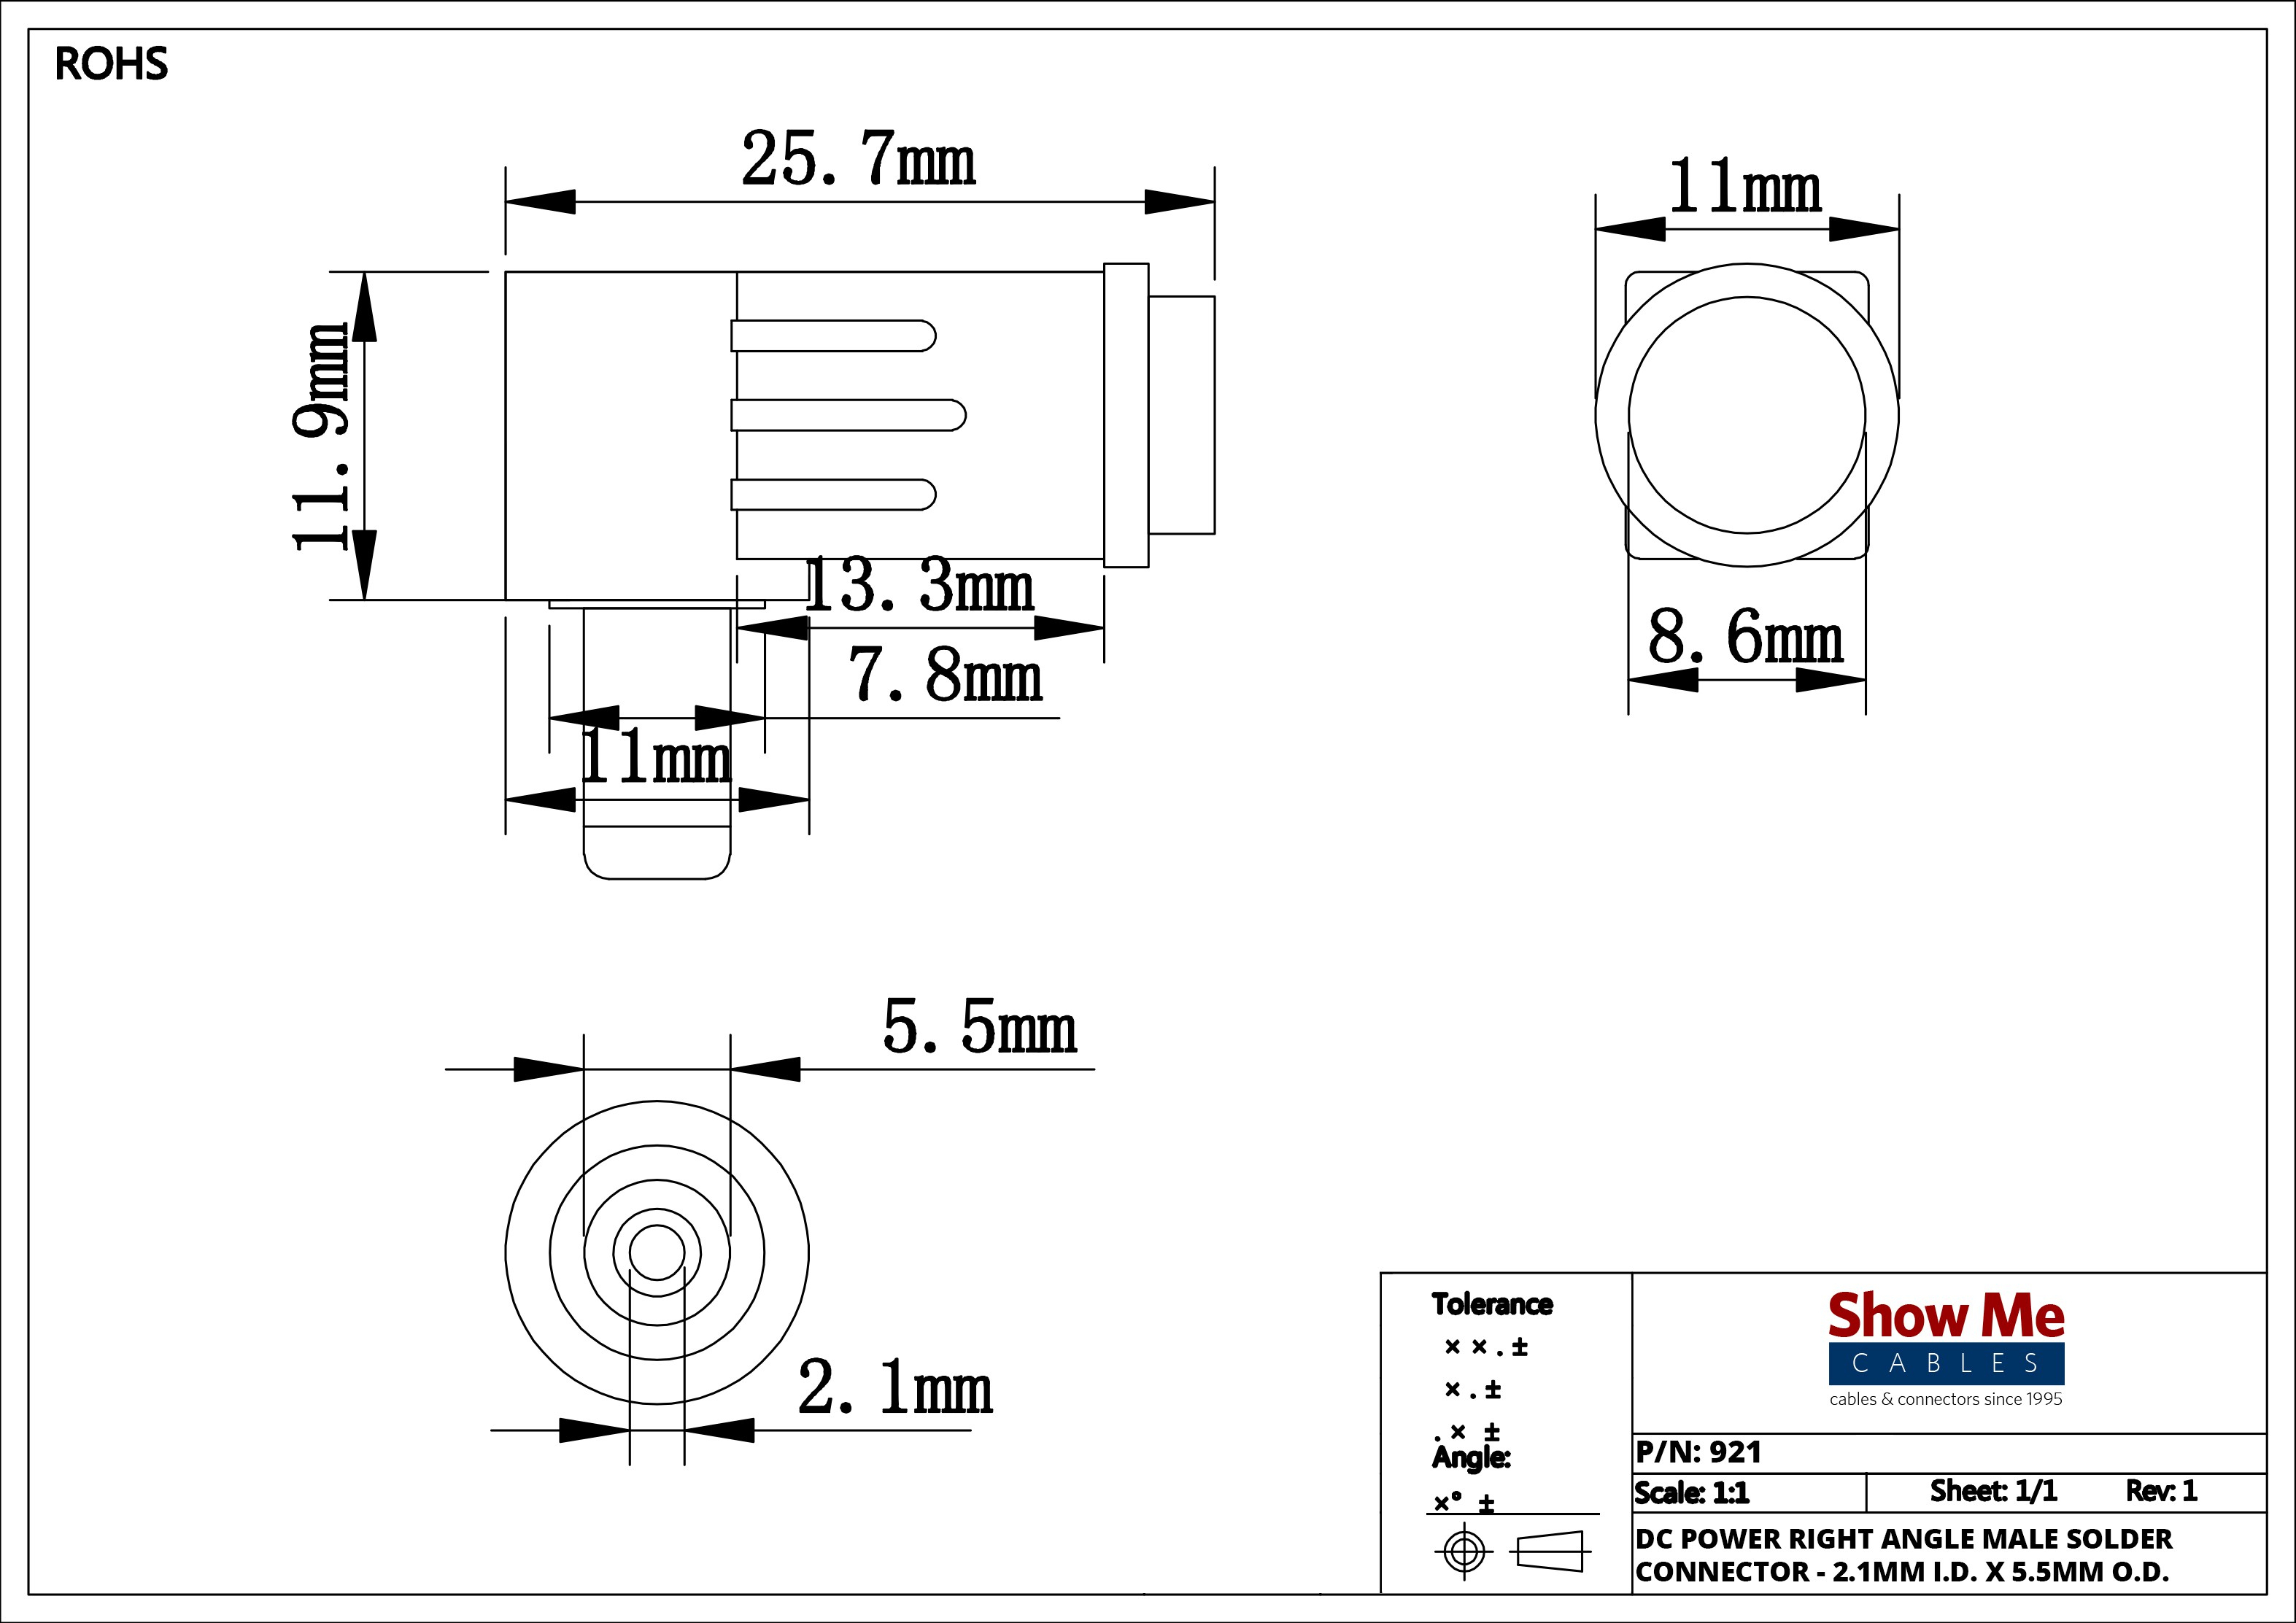 hes 1006 12 24d 630 wiring diagram Collection-home speaker wiring diagram Collection 3 5 Mm Stereo Jack Wiring Diagram Elegant 2 5mm DOWNLOAD Wiring Diagram 5-s